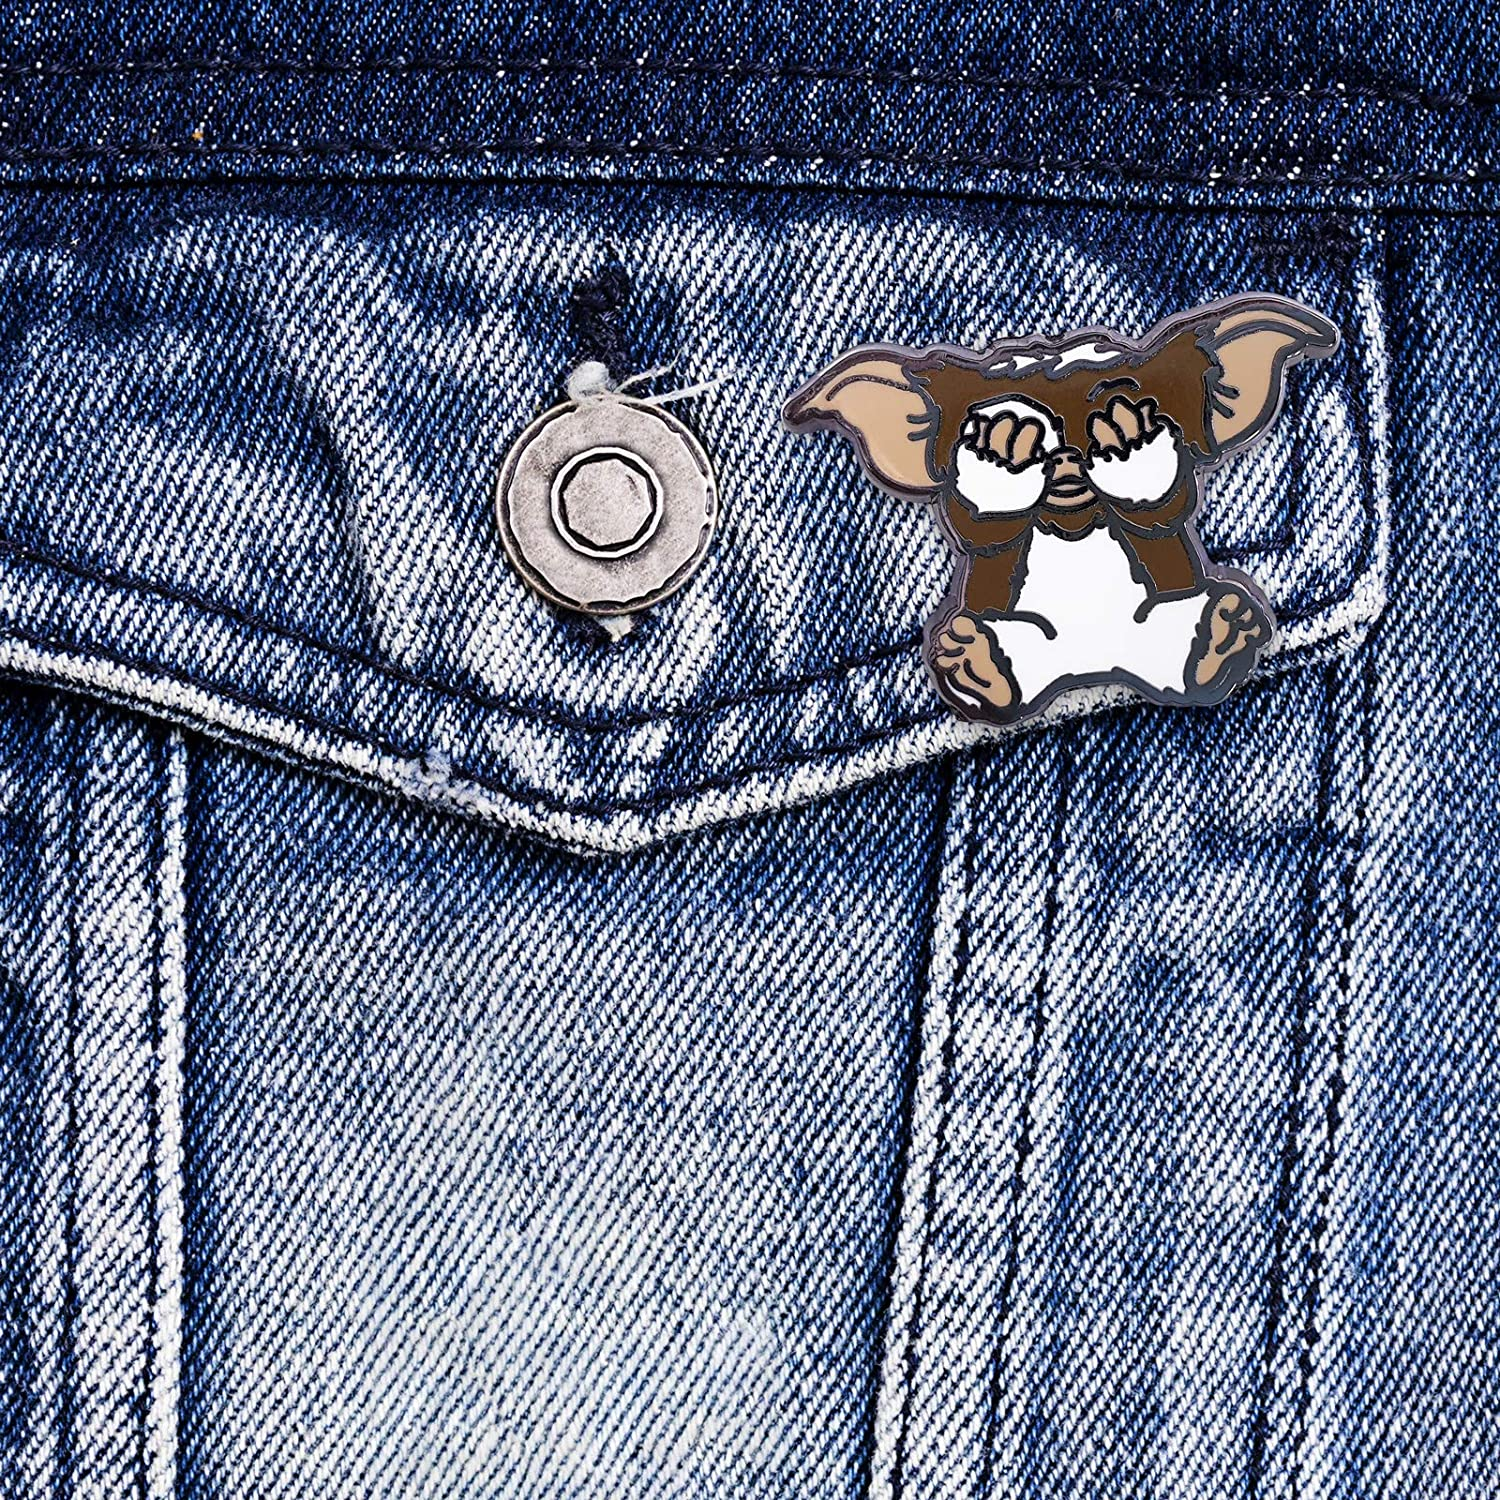 Gremlins Pins ABYstyle Gizmo